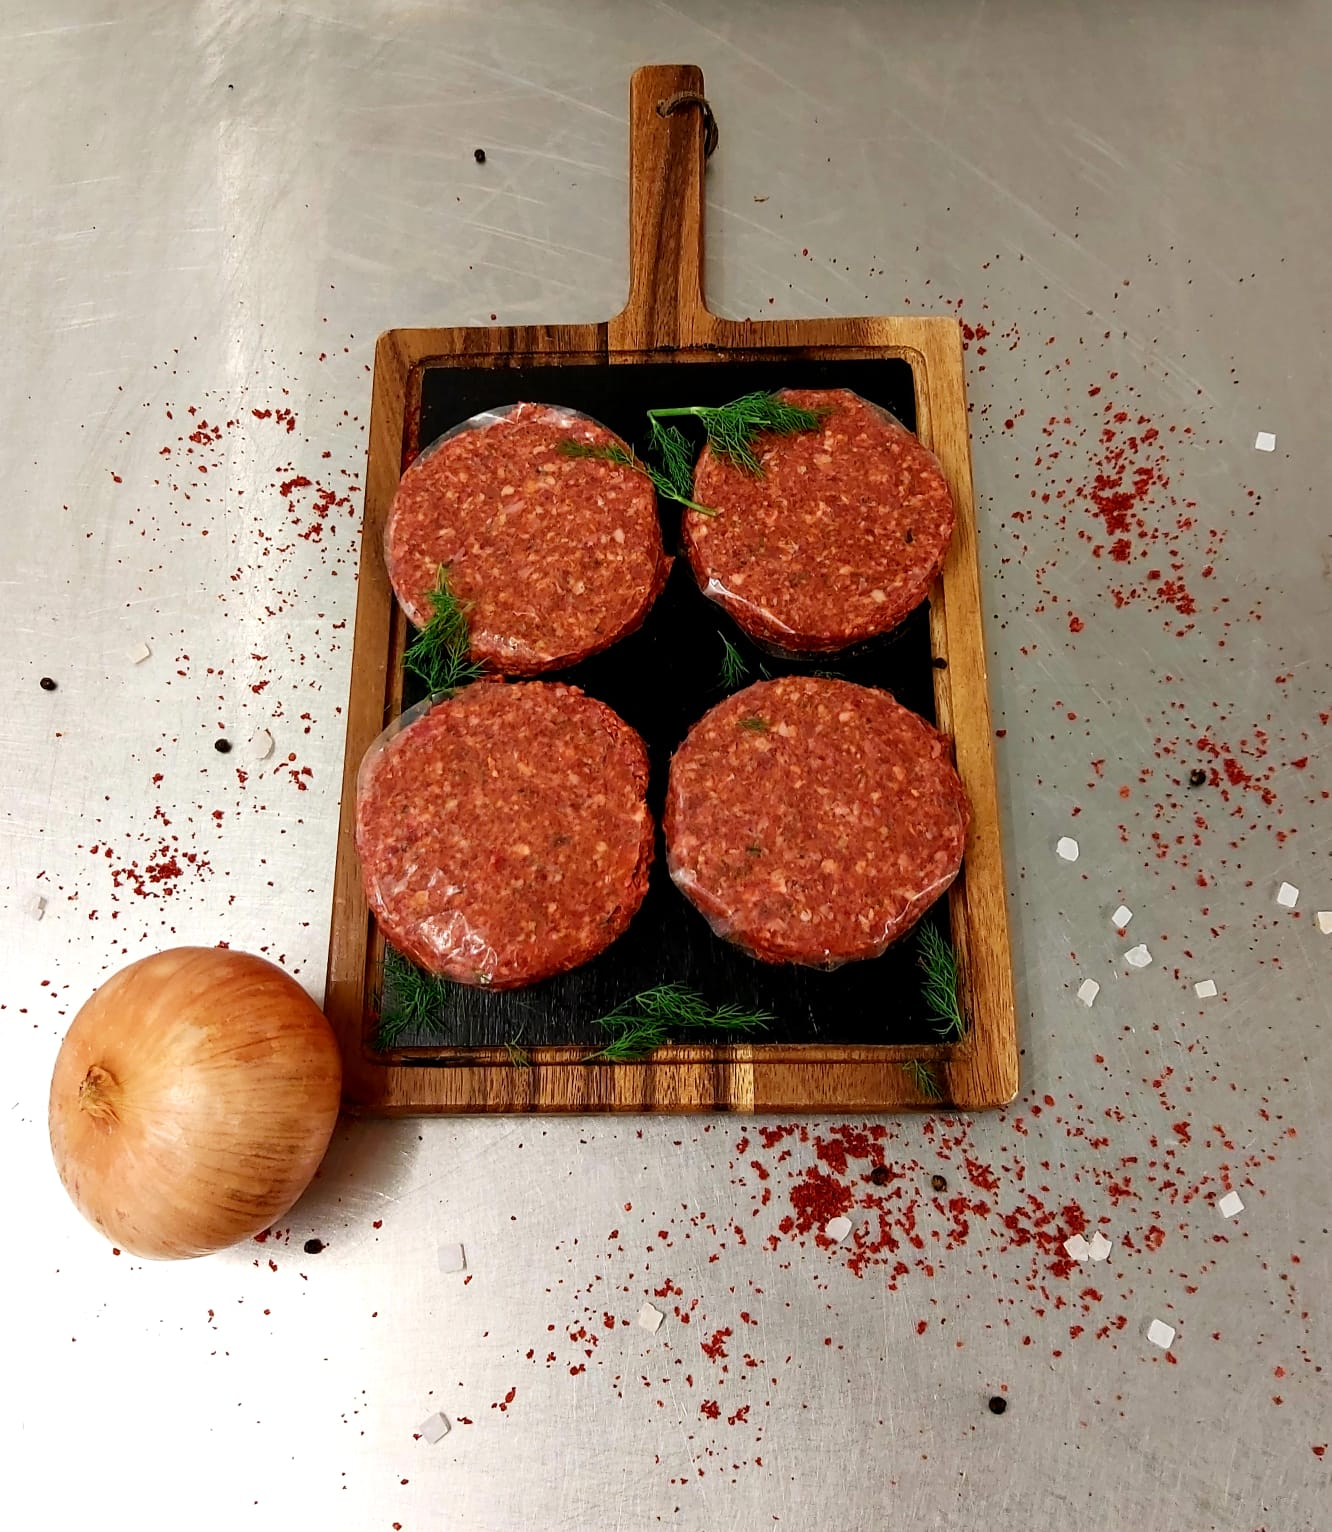 Chilli Beef Burgers 4 pack